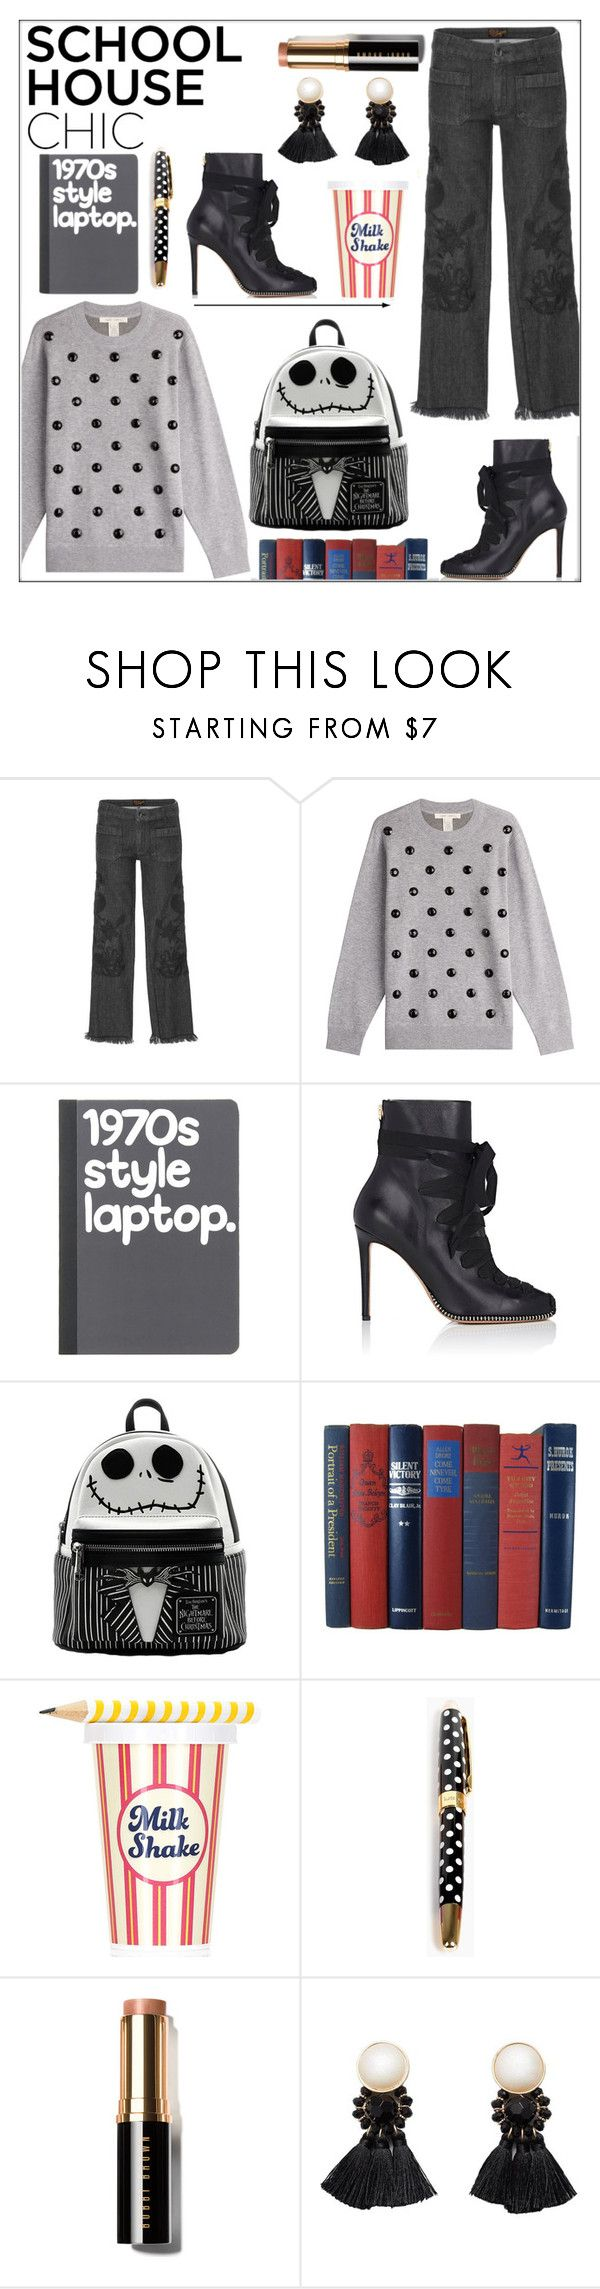 """""""Work Hard, Play Hard: Finals"""" by pat912 ❤ liked on Polyvore featuring The Seafarer, Marc Jacobs, Altuzarra, Kate Spade, Bobbi Brown Cosmetics, MANGO, finals and polyvoreeditorial"""